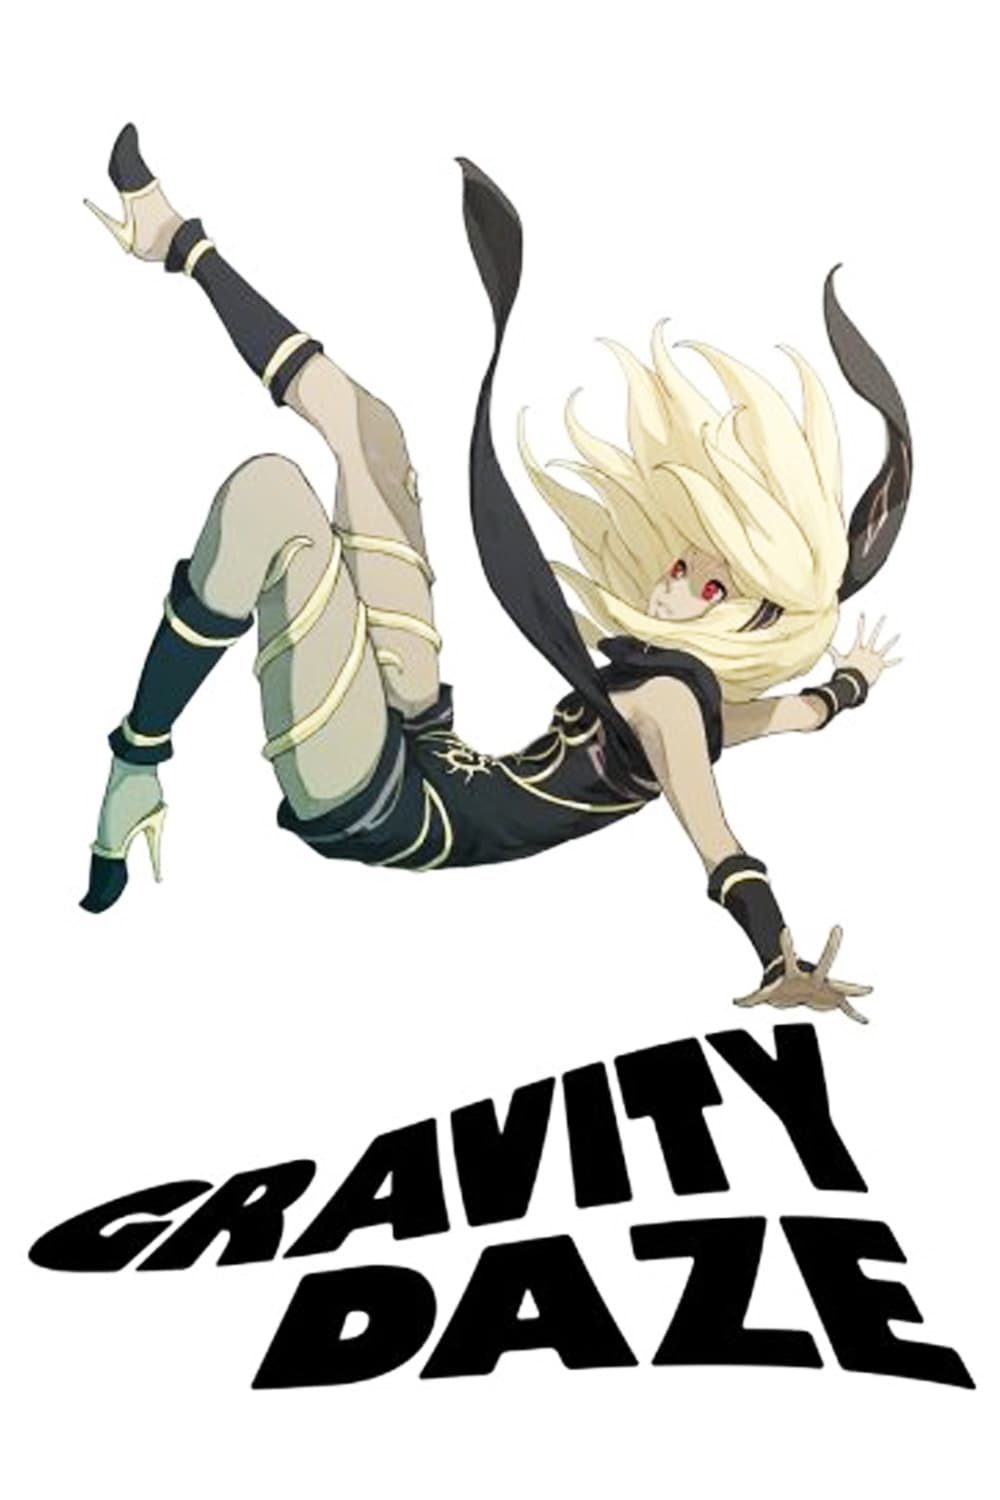 Gravity Daze the Animation: Ouverture (2016)